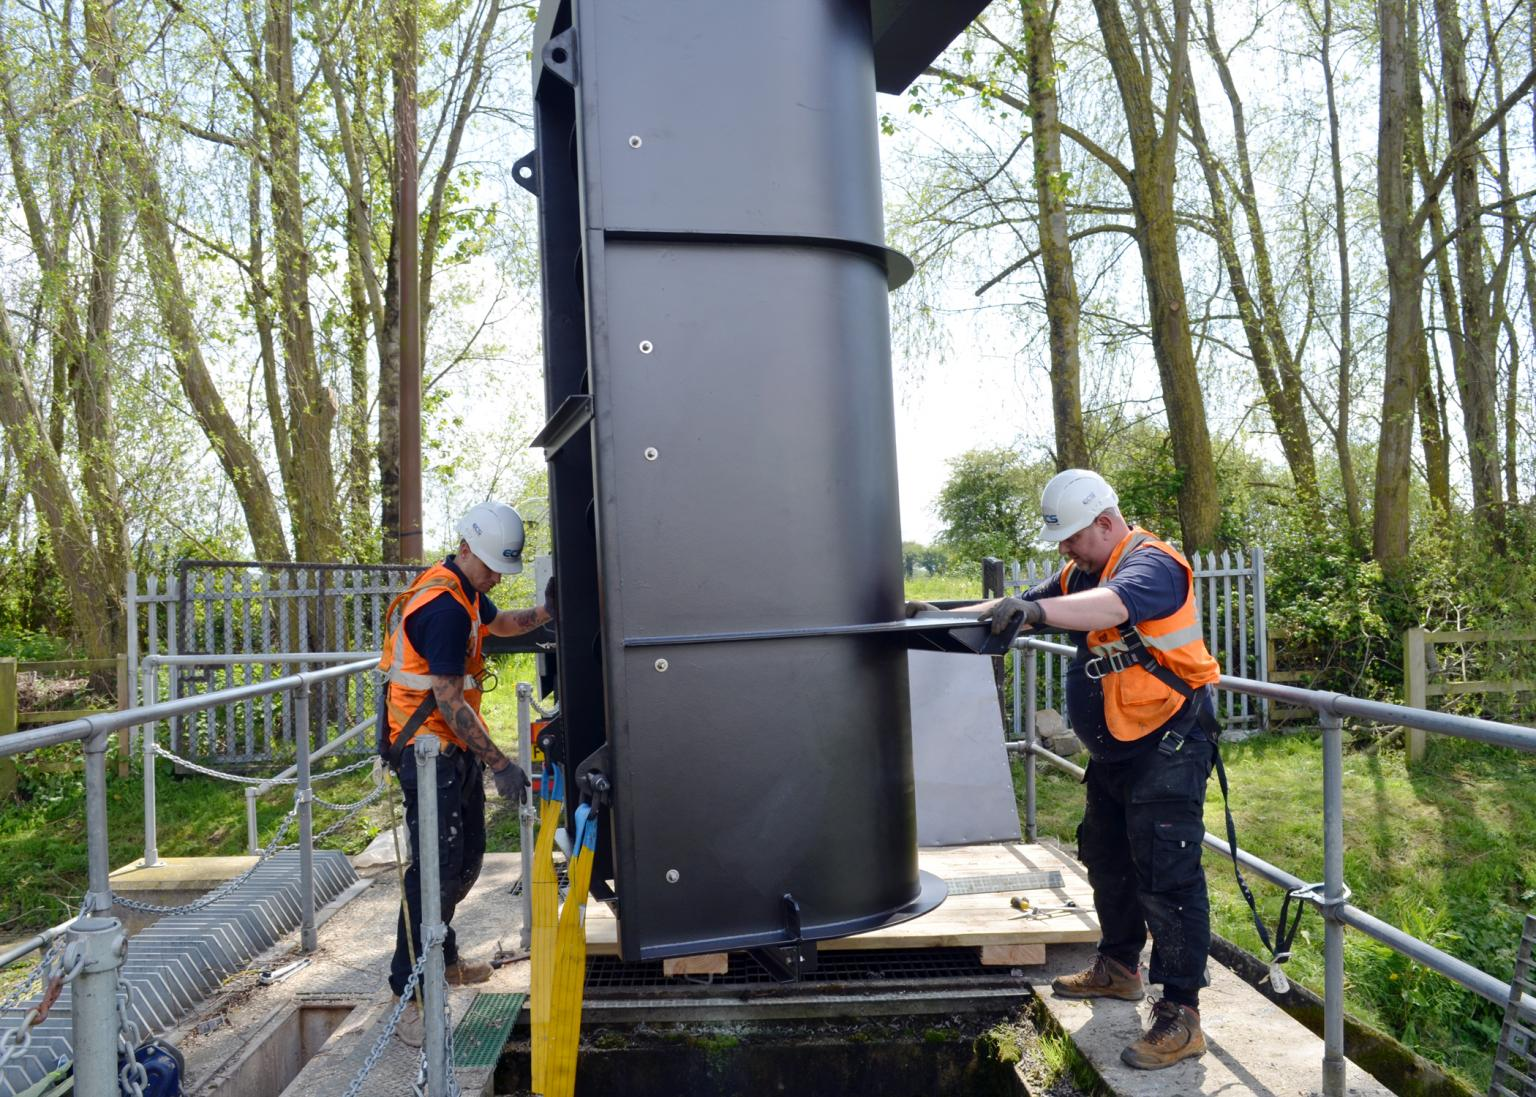 The Archimedes screw pump is delivering a 44% energy saving